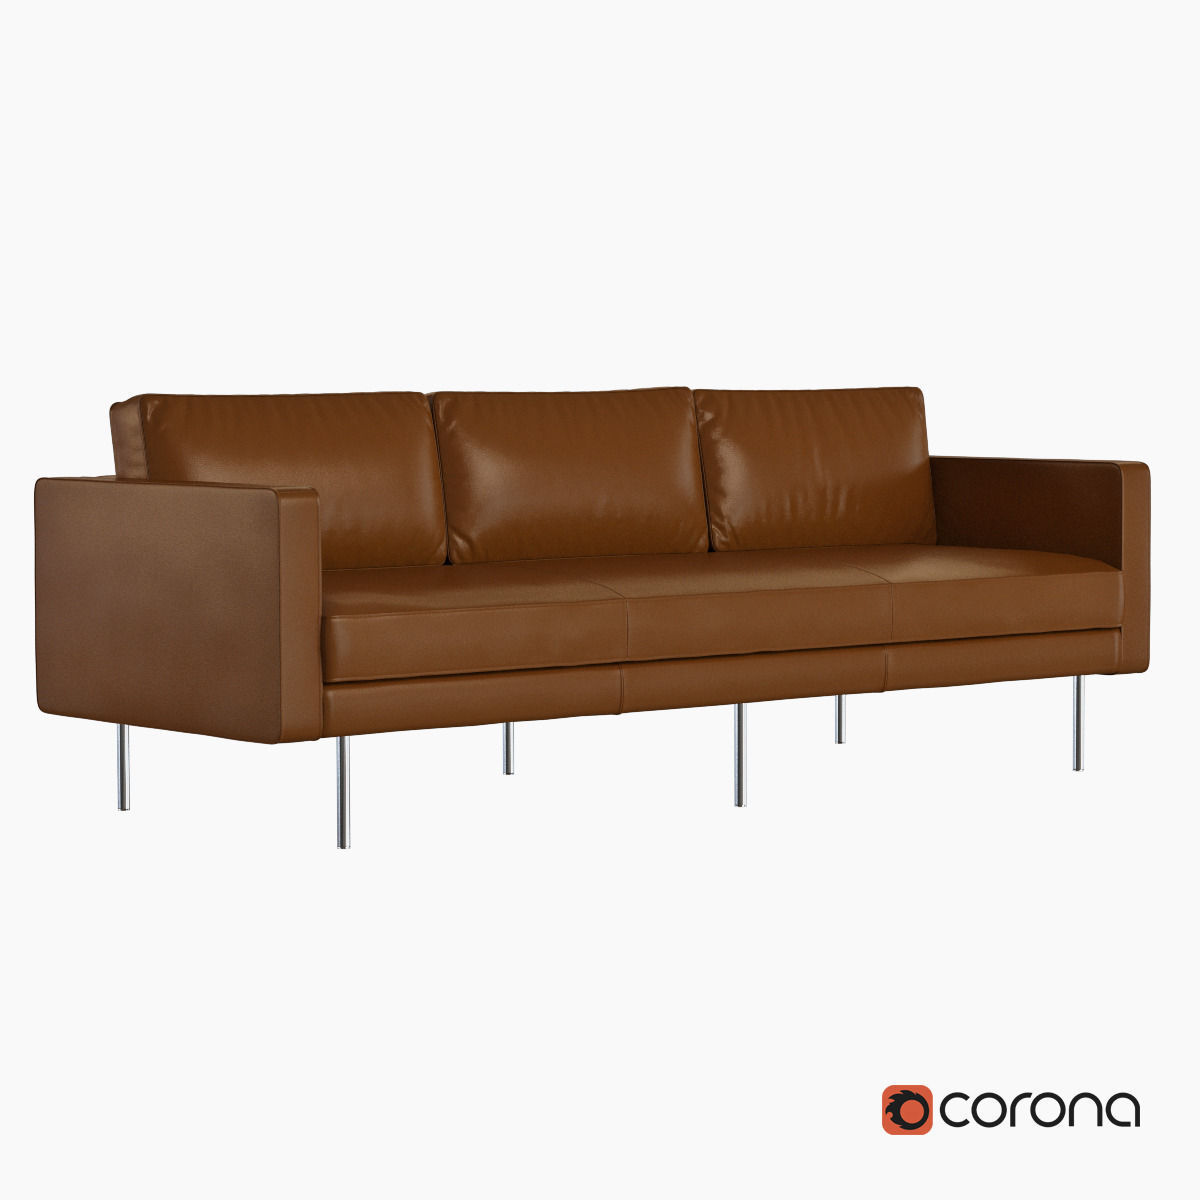 west elm leather sofa reviews red sectional bed axel 3d model max obj fbx cgtrader